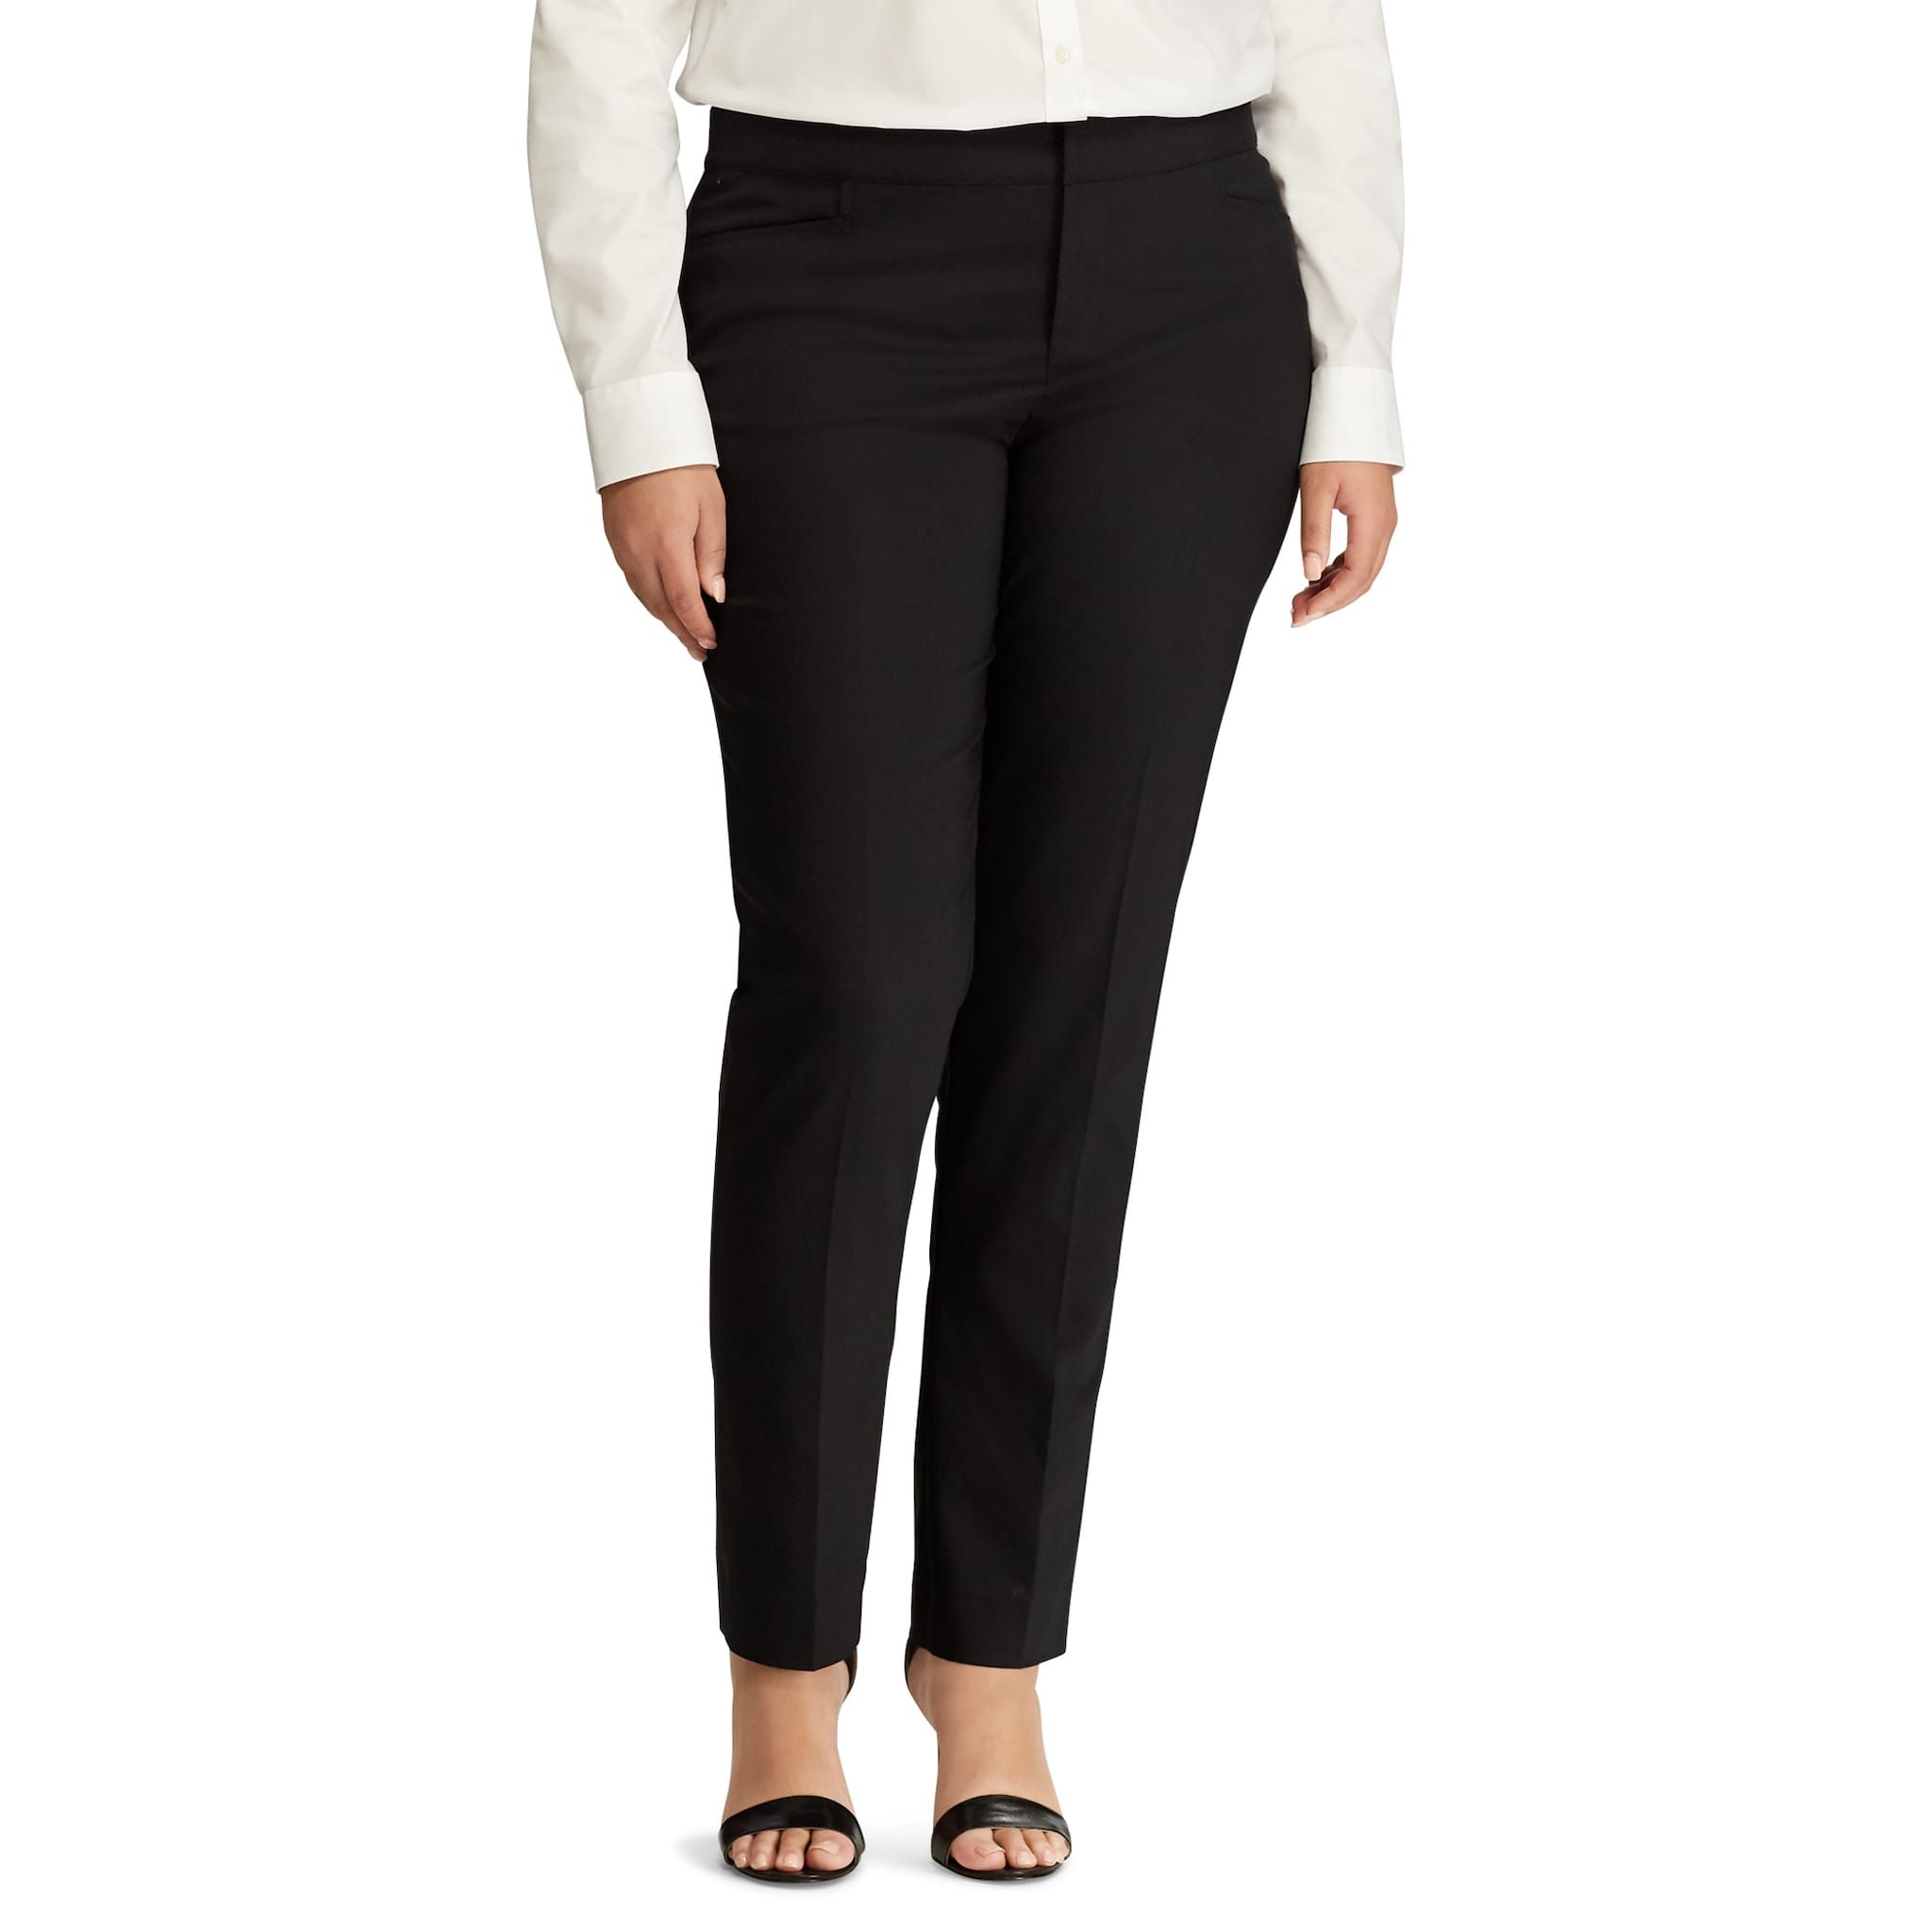 1cf555c123baa9 Plus Size Chaps Solid Straight-Leg Pants | Bullet journal ideas in ...